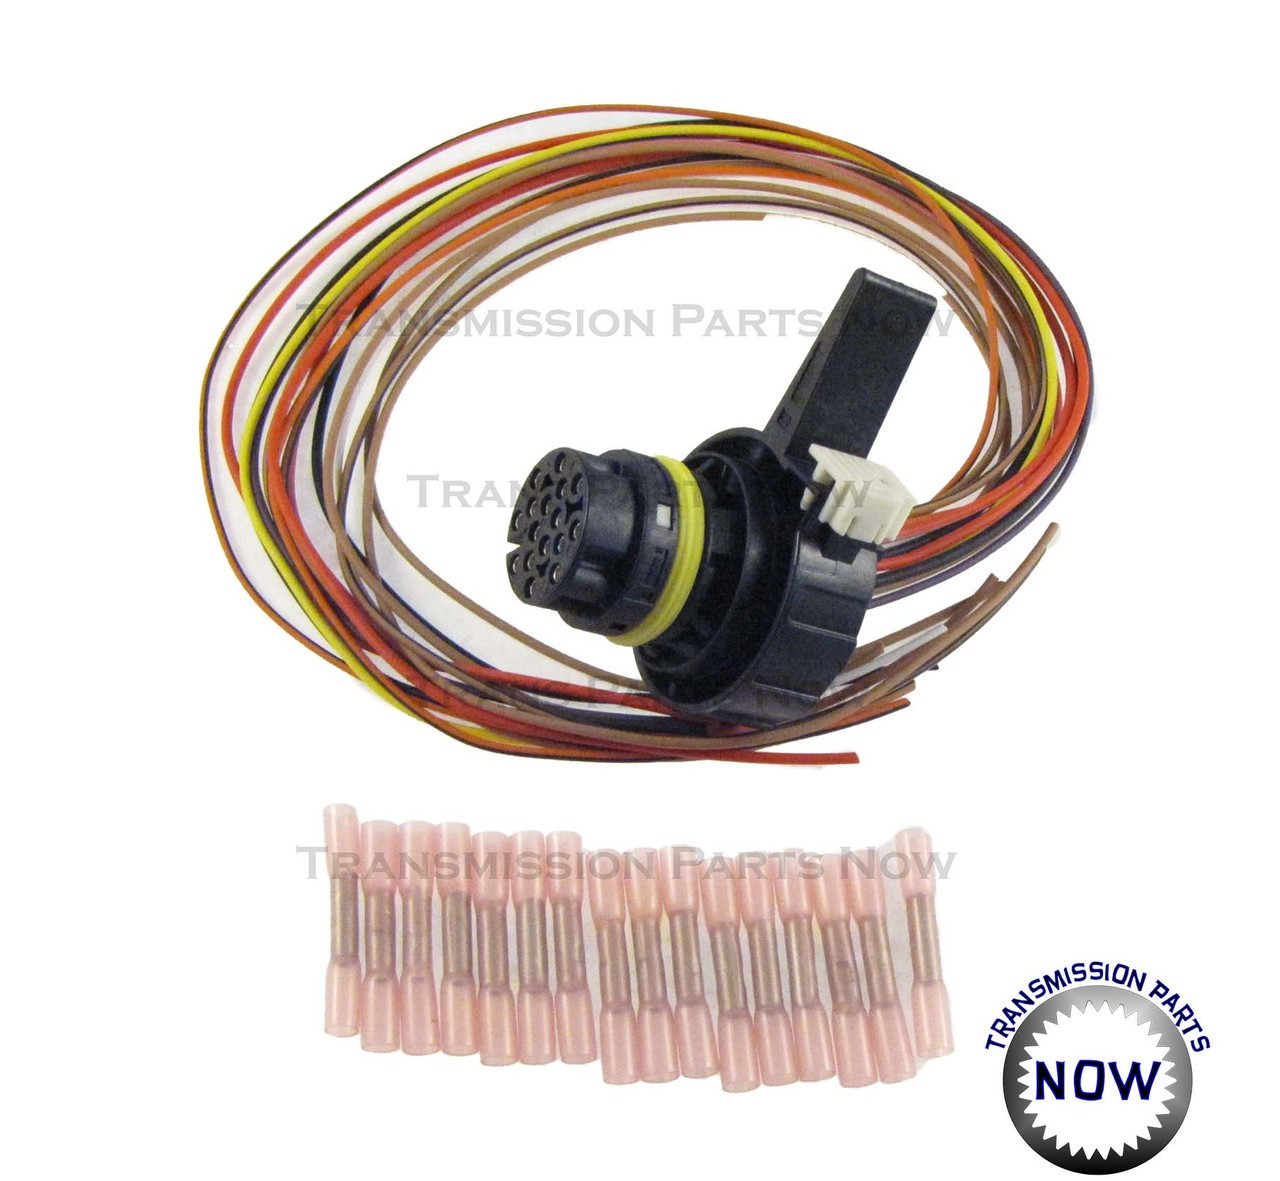 hight resolution of 6l80 connector repair kit rostra fast free shipping to the us gm wiring harness repair parts